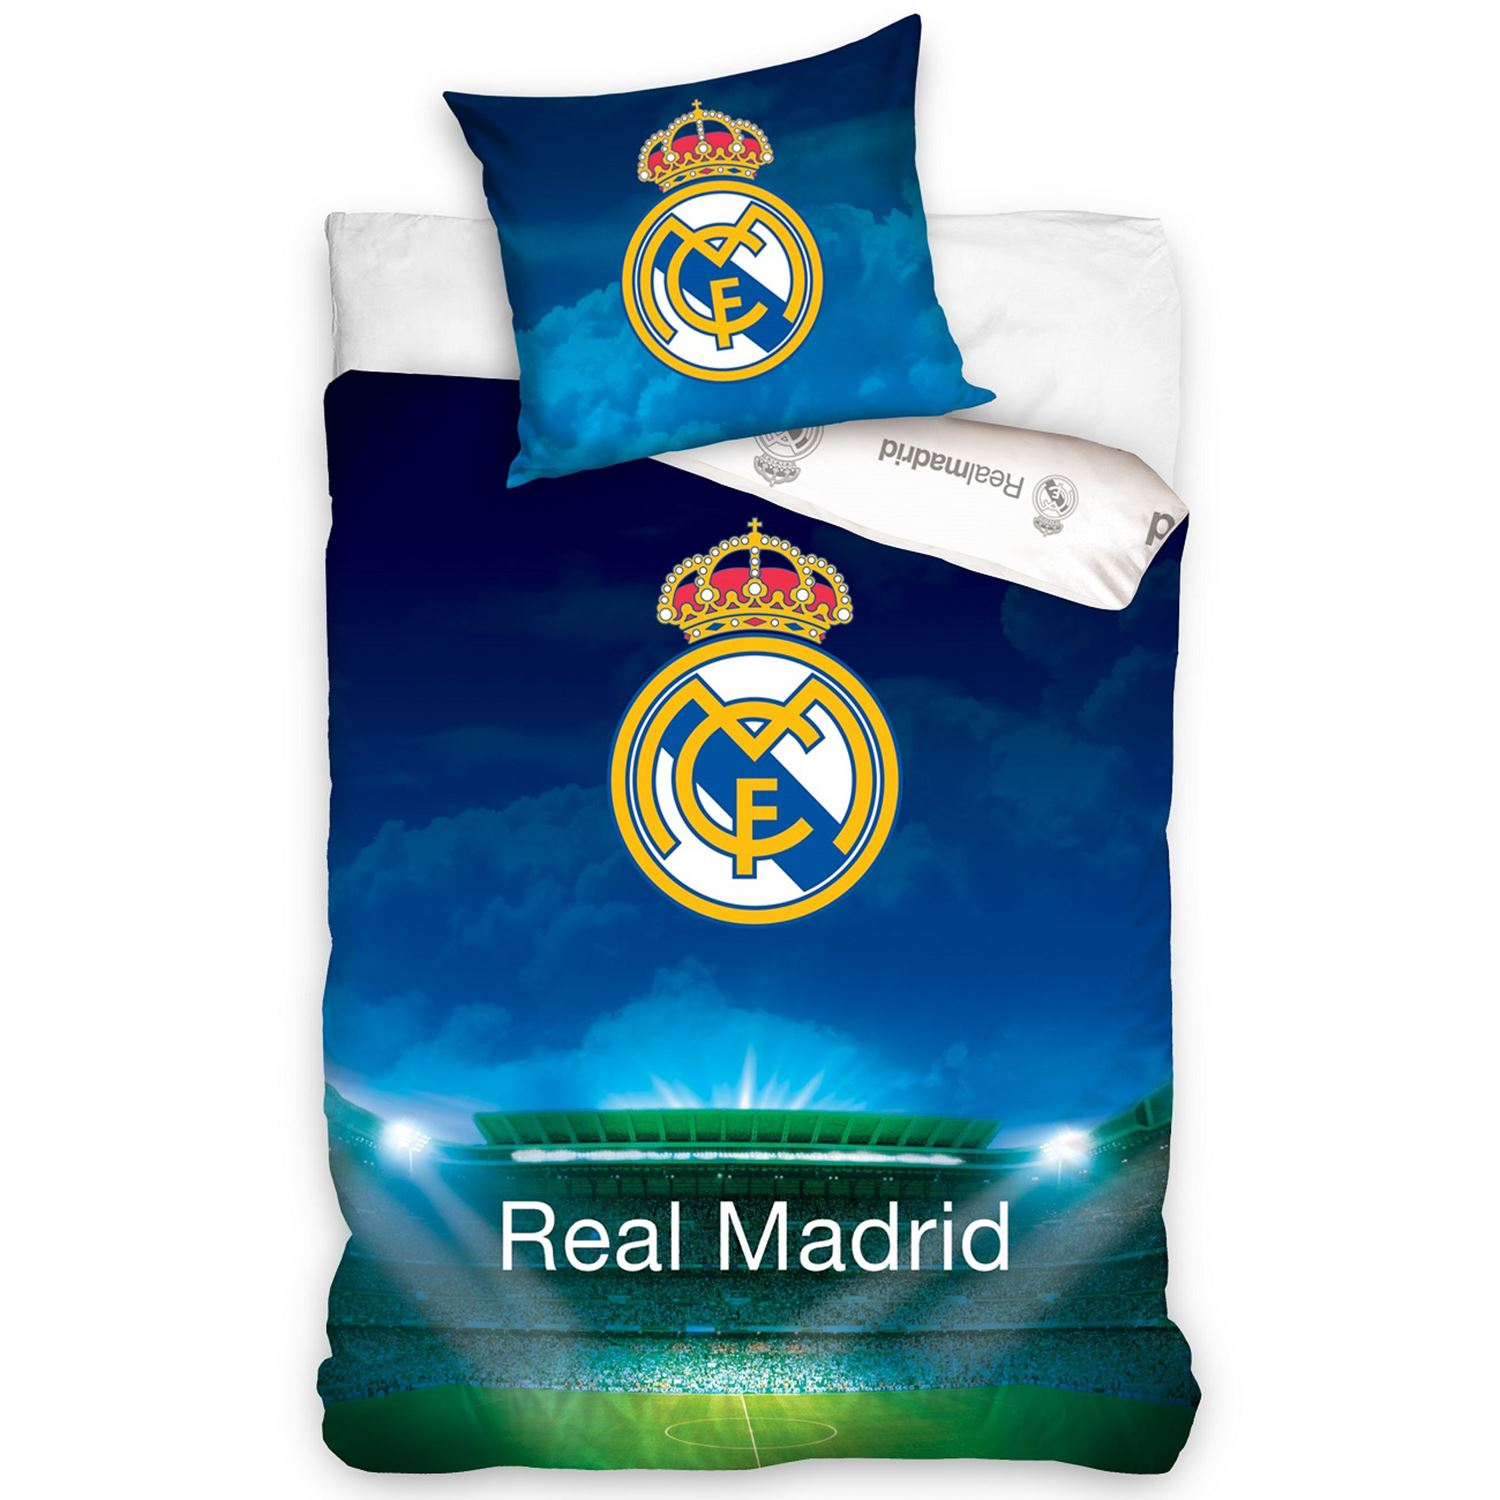 Deco Chambre Maryline Monroe details about real madrid cf stadium single duvet cover set cotton european  bedding football